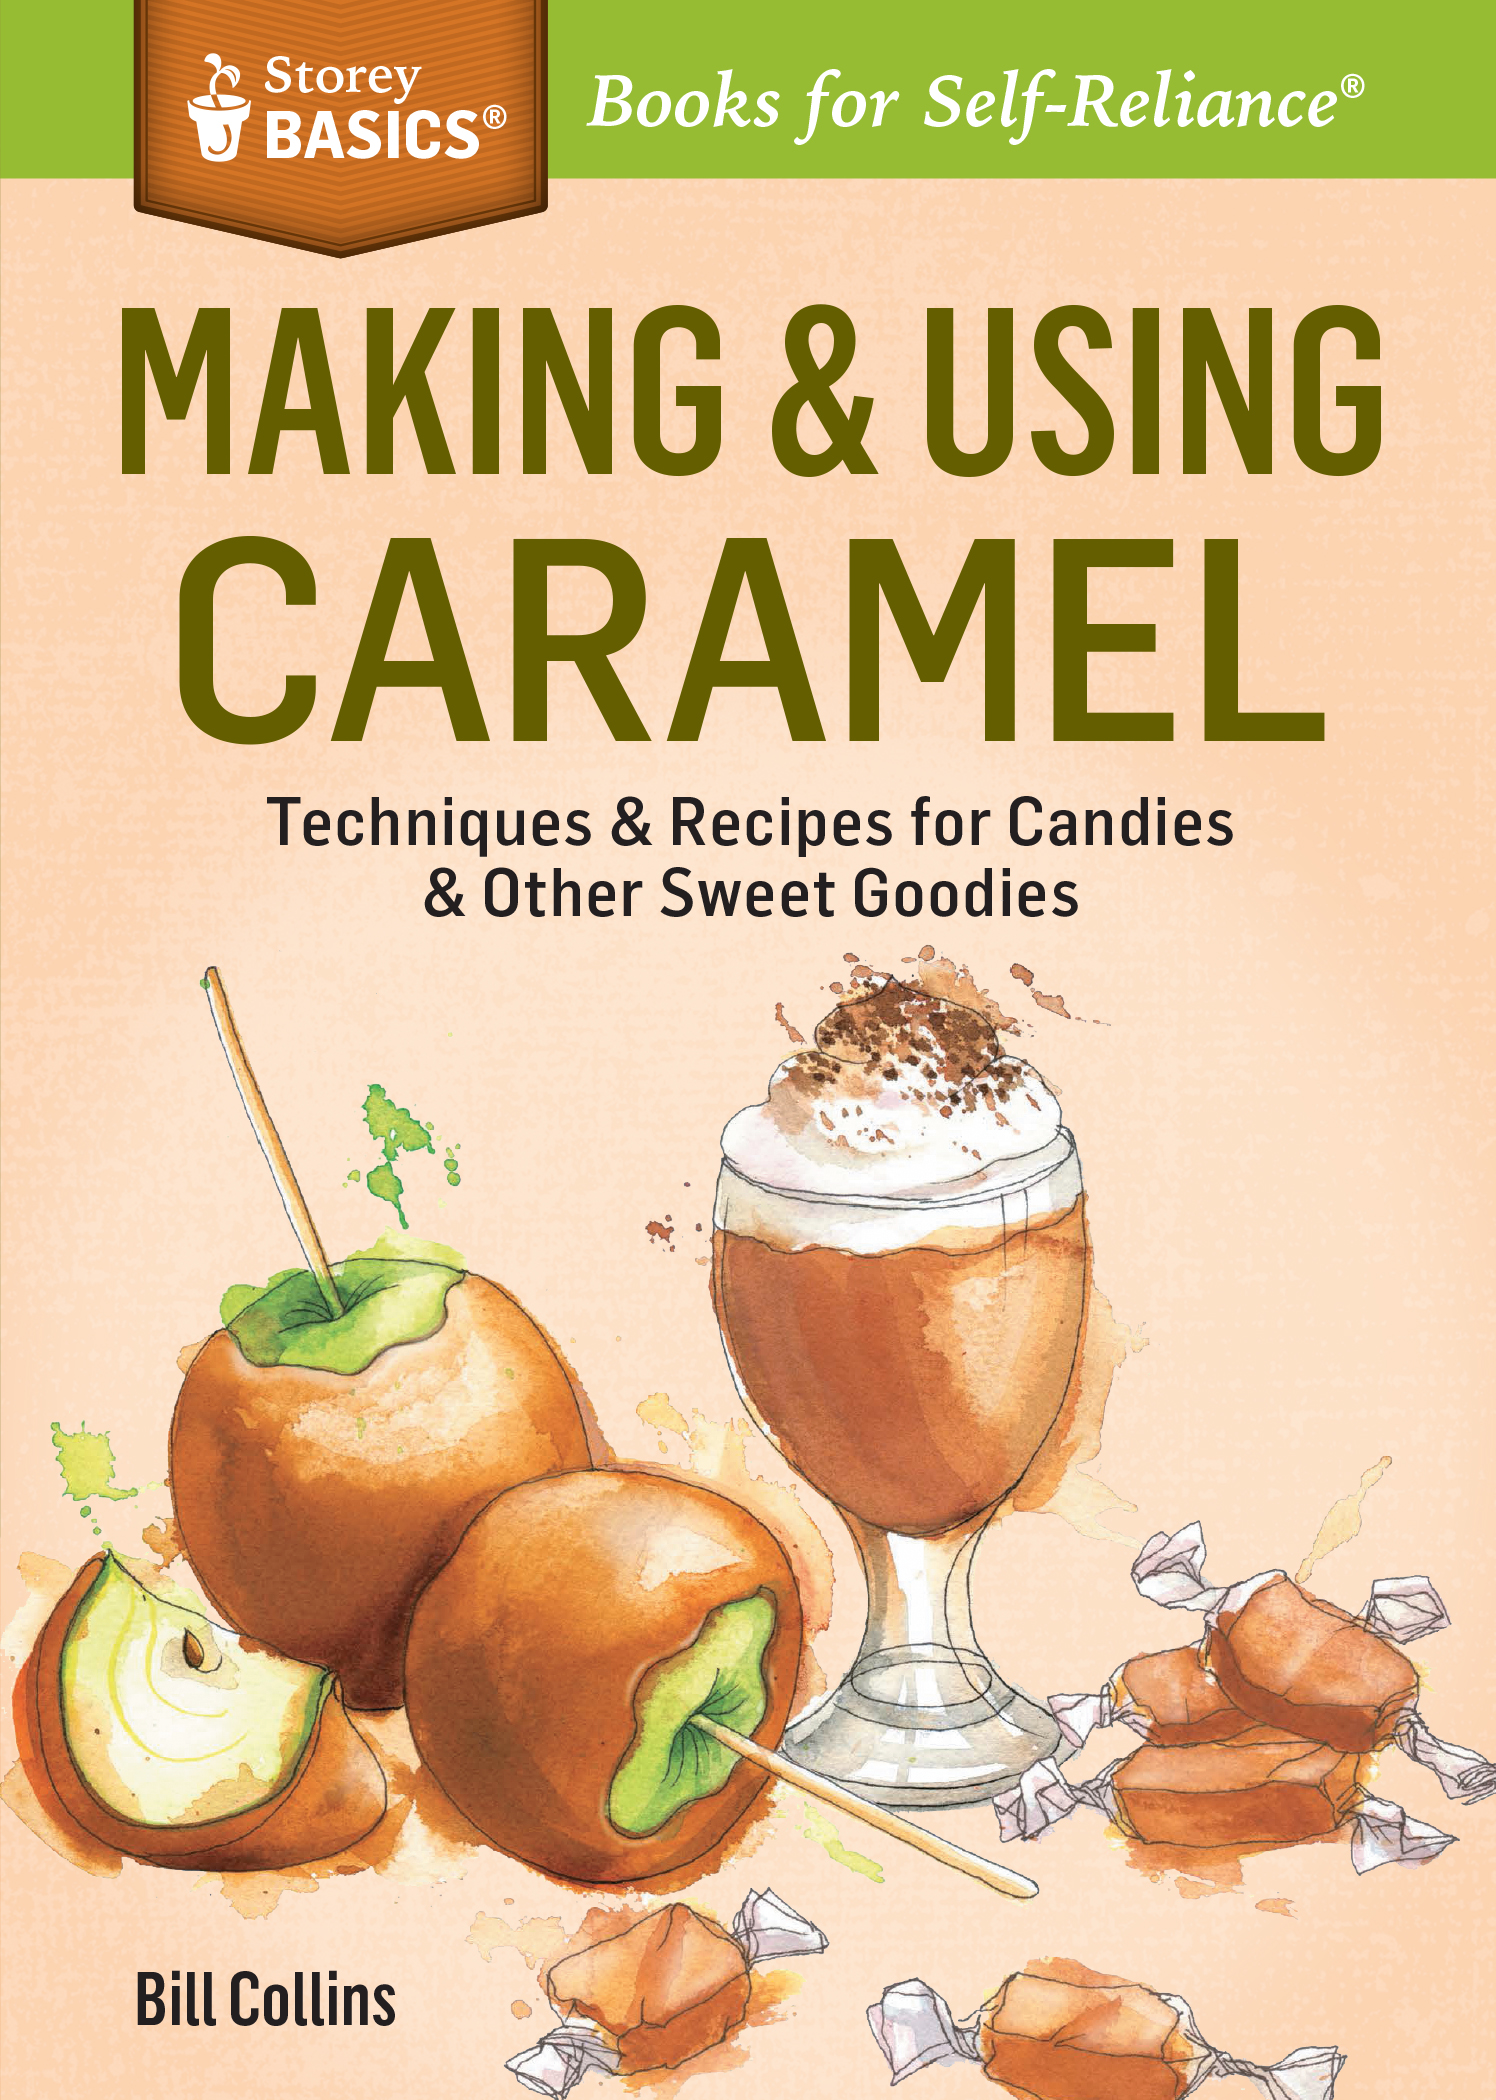 Making & Using Caramel Techniques & Recipes for Candies & Other Sweet Goodies. A Storey BASICS® Title - Bill Collins